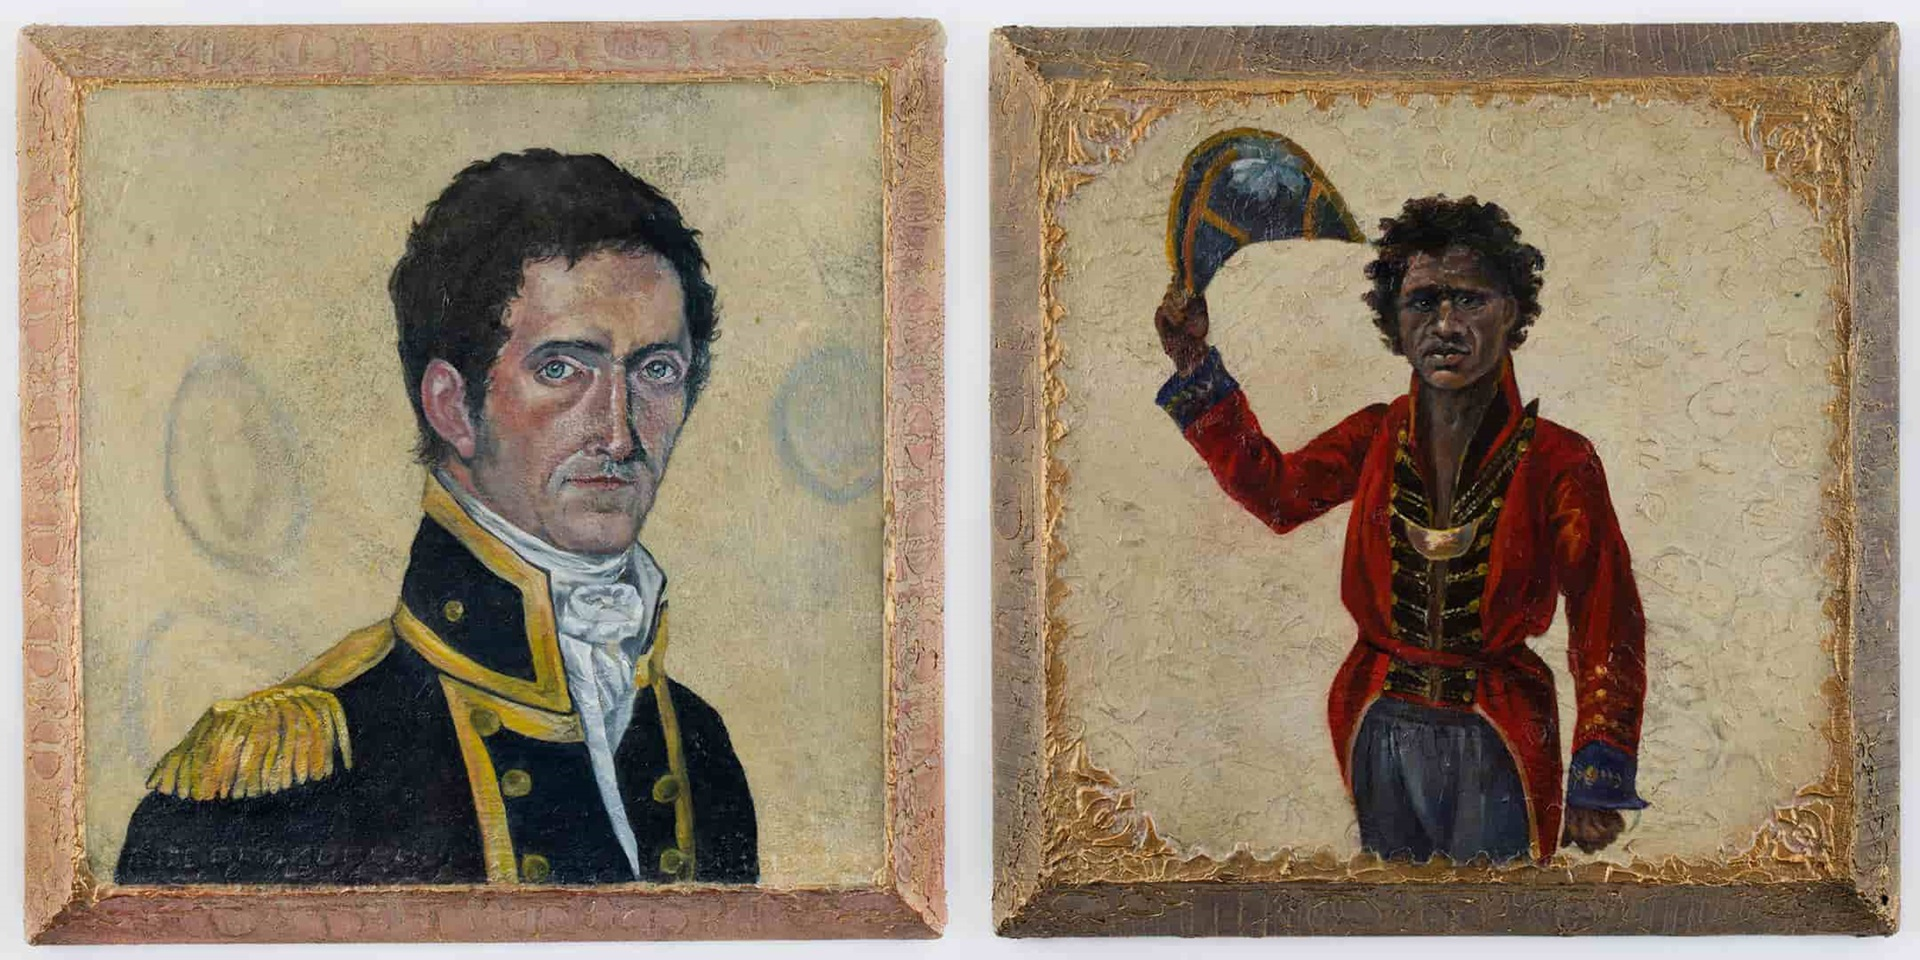 Matthew Flinders and Bungaree by Helen Tiernan from her series 'Heroes of Colonial Encounters'. ANMM Collection 00055144 and 00055142.